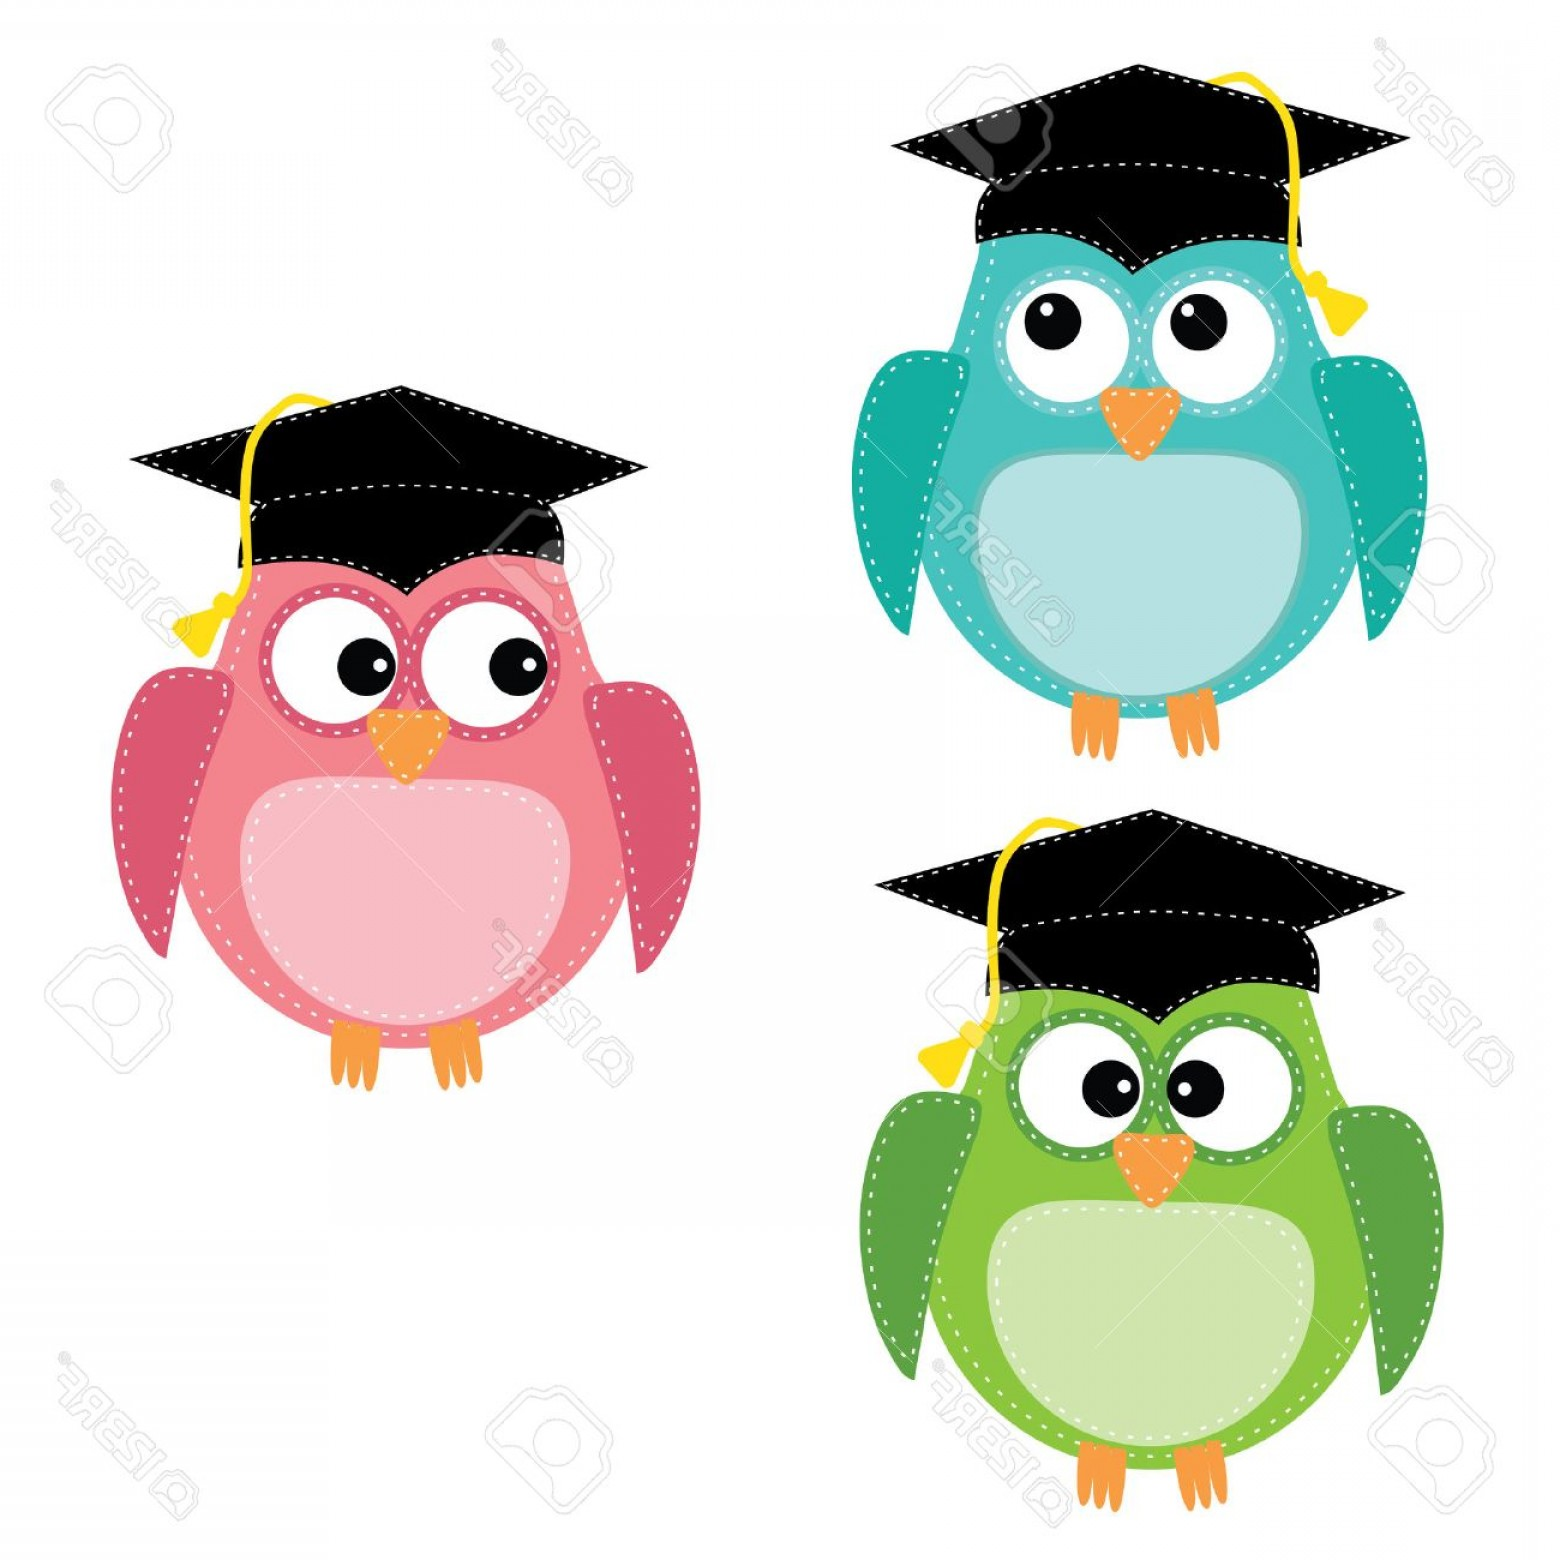 Owl with graduation cap clipart jpg black and white library Photostock Vector Three Owls With Graduation Caps For ... jpg black and white library